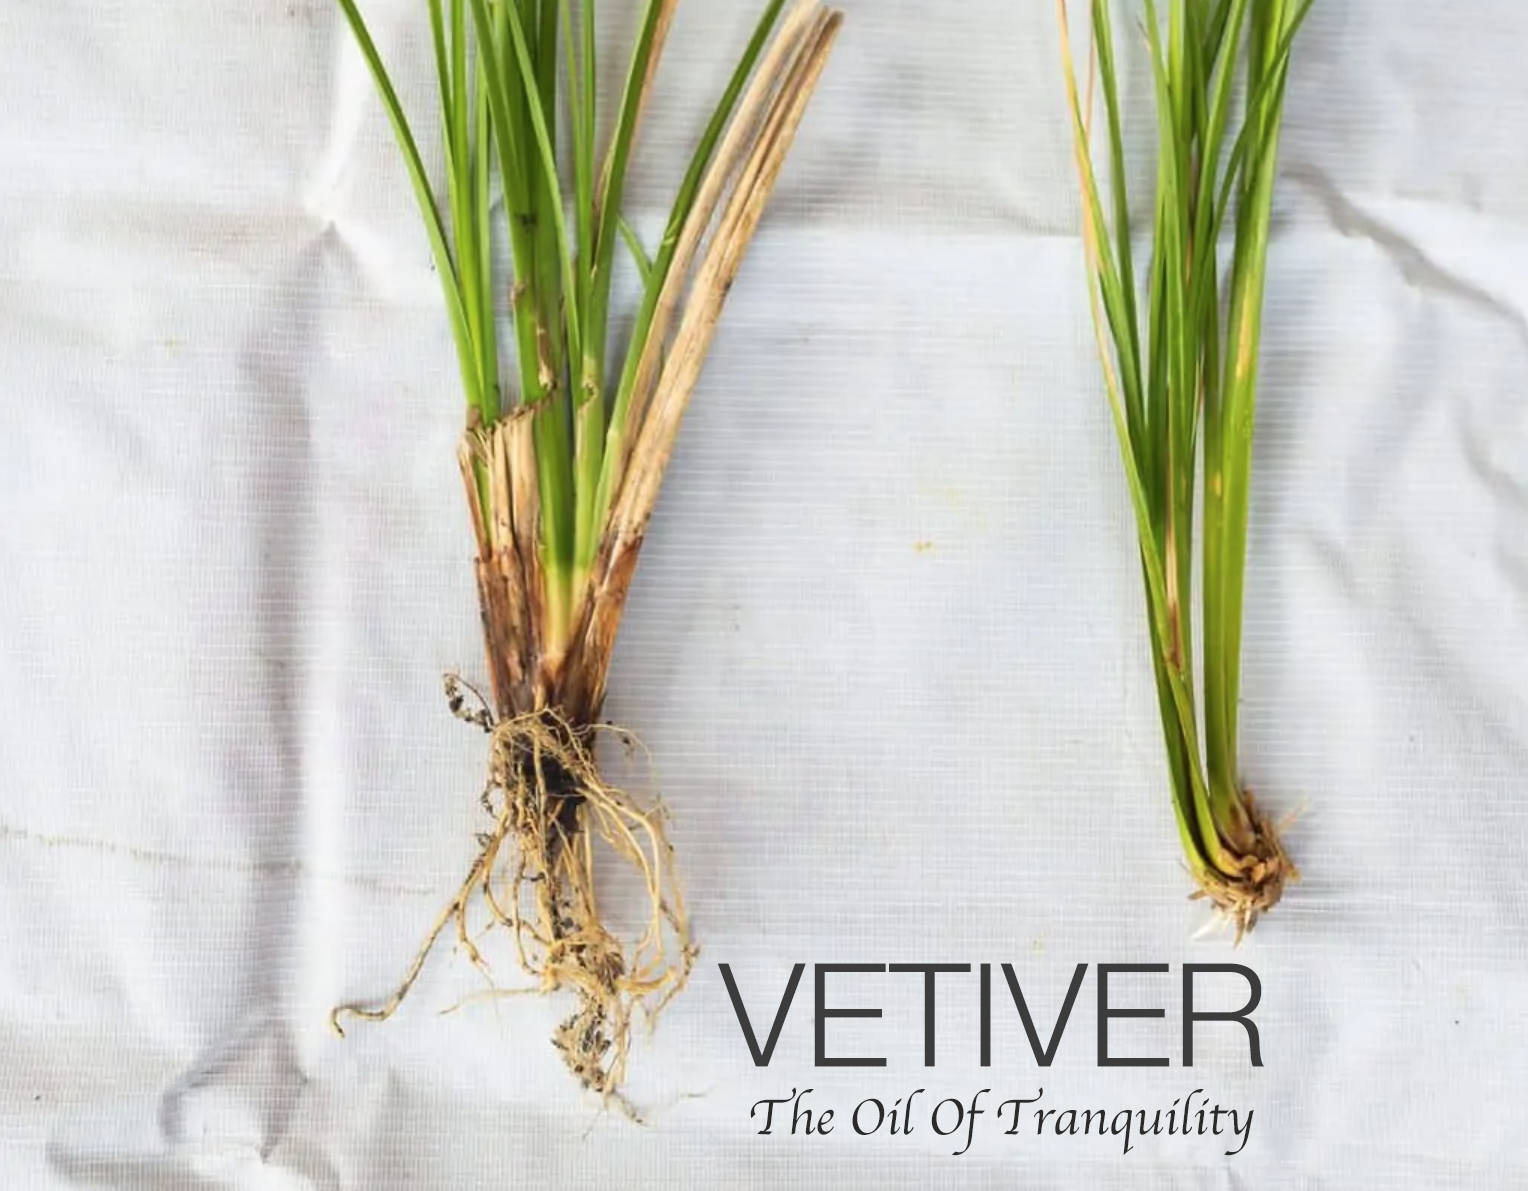 Vetiver grass and root